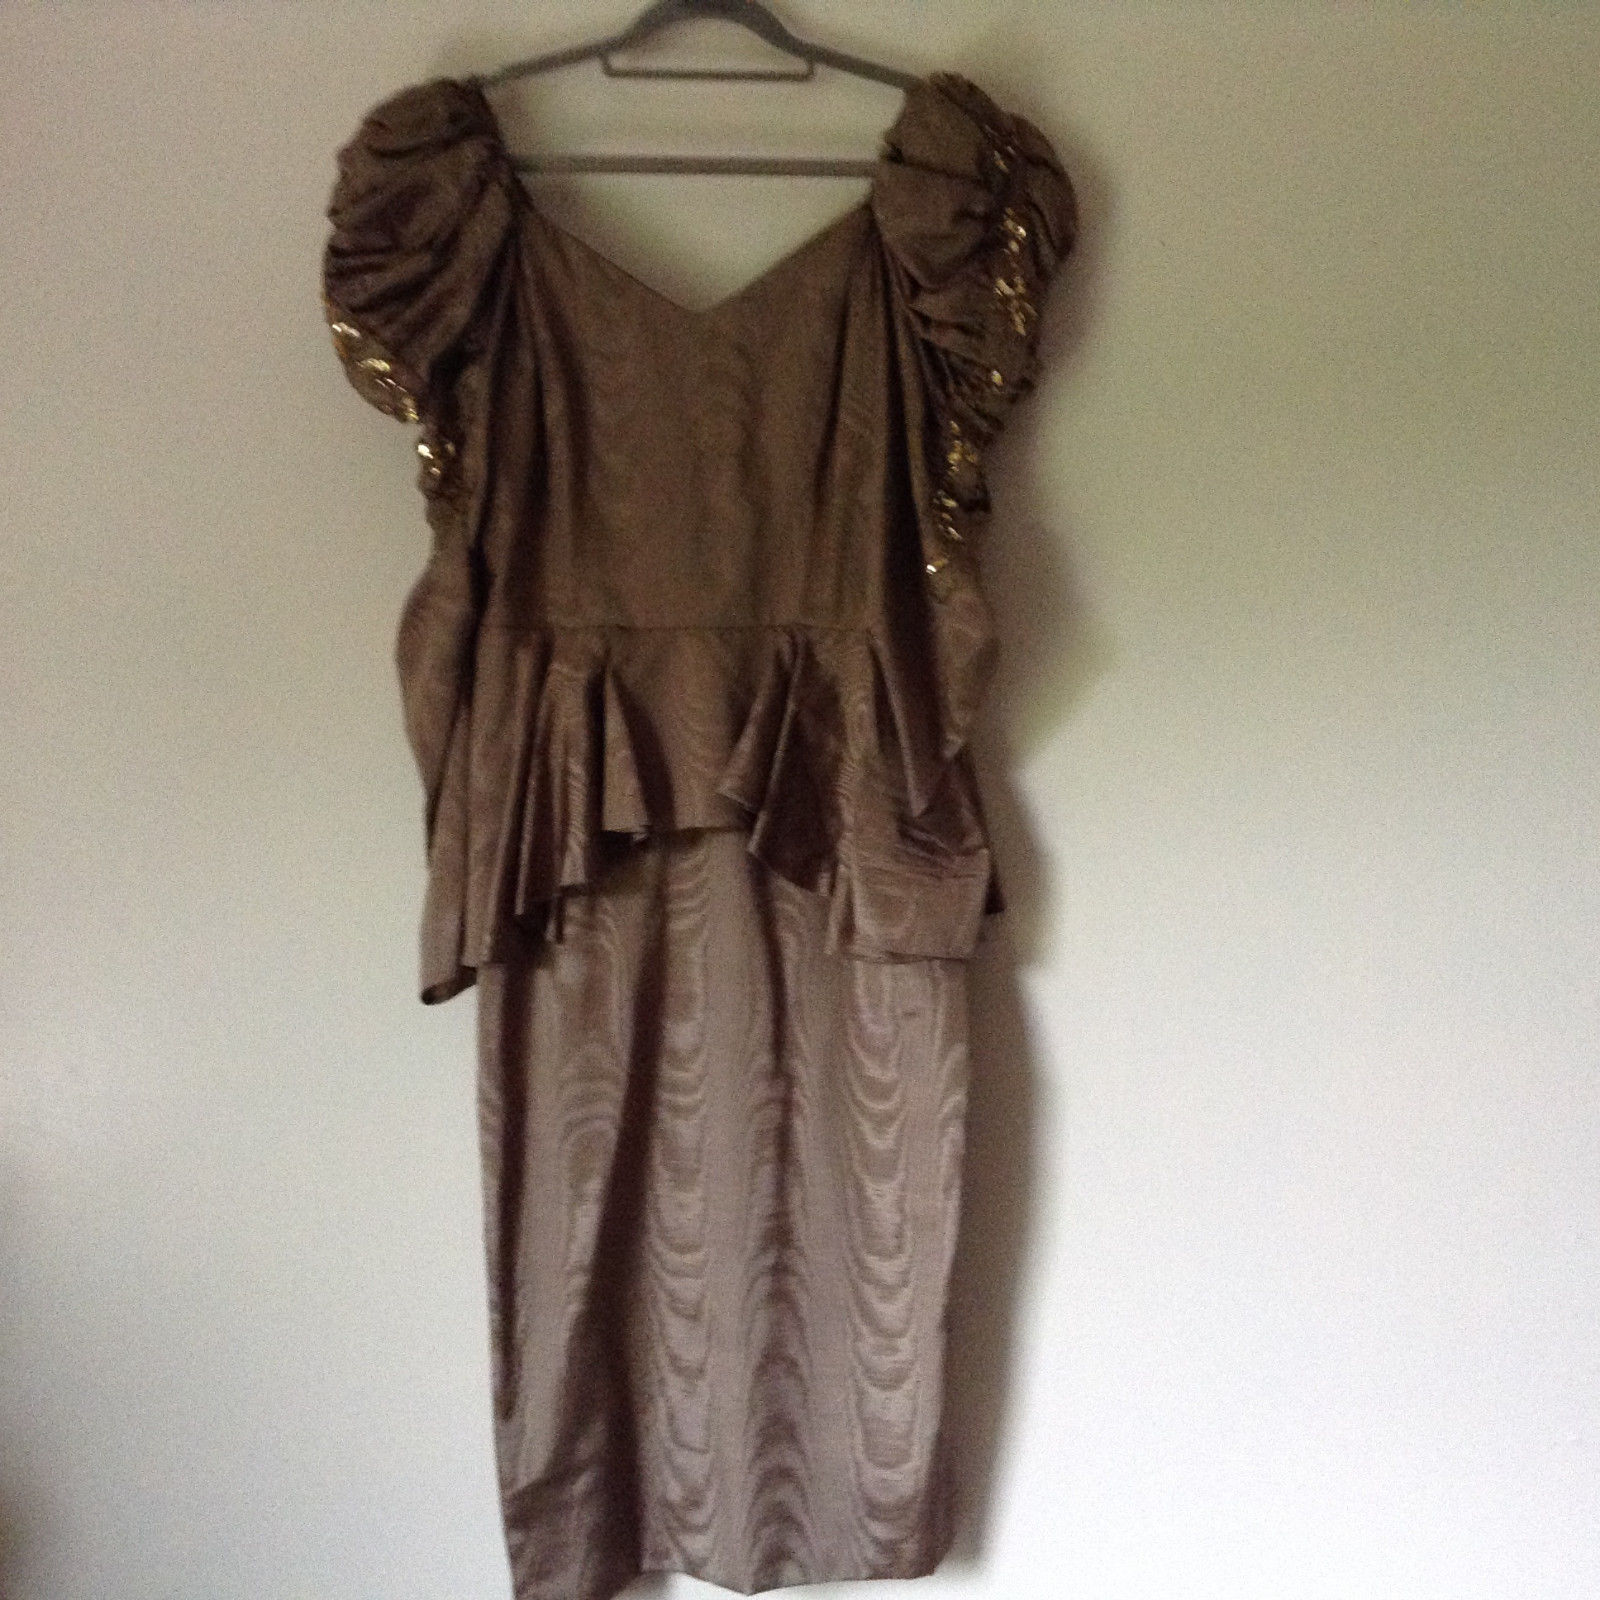 Golden Brown Vintage Dress Beautiful Gown by Chemisier Valerie Porr Size 12